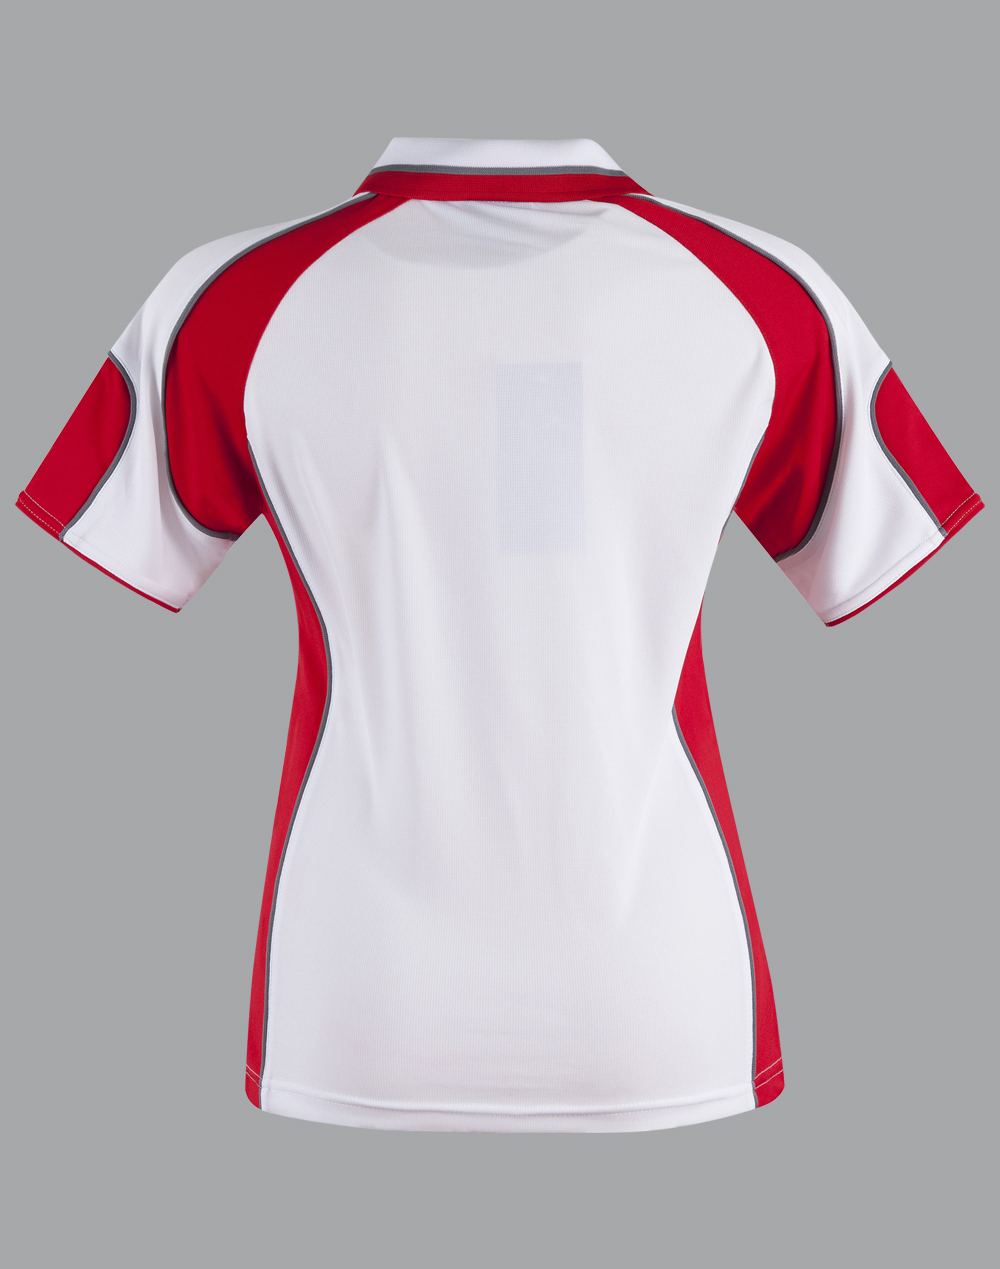 https://s3-ap-southeast-1.amazonaws.com/ws-imgs/POLOSHIRTS/PS62_WhiteRed_Back.jpg